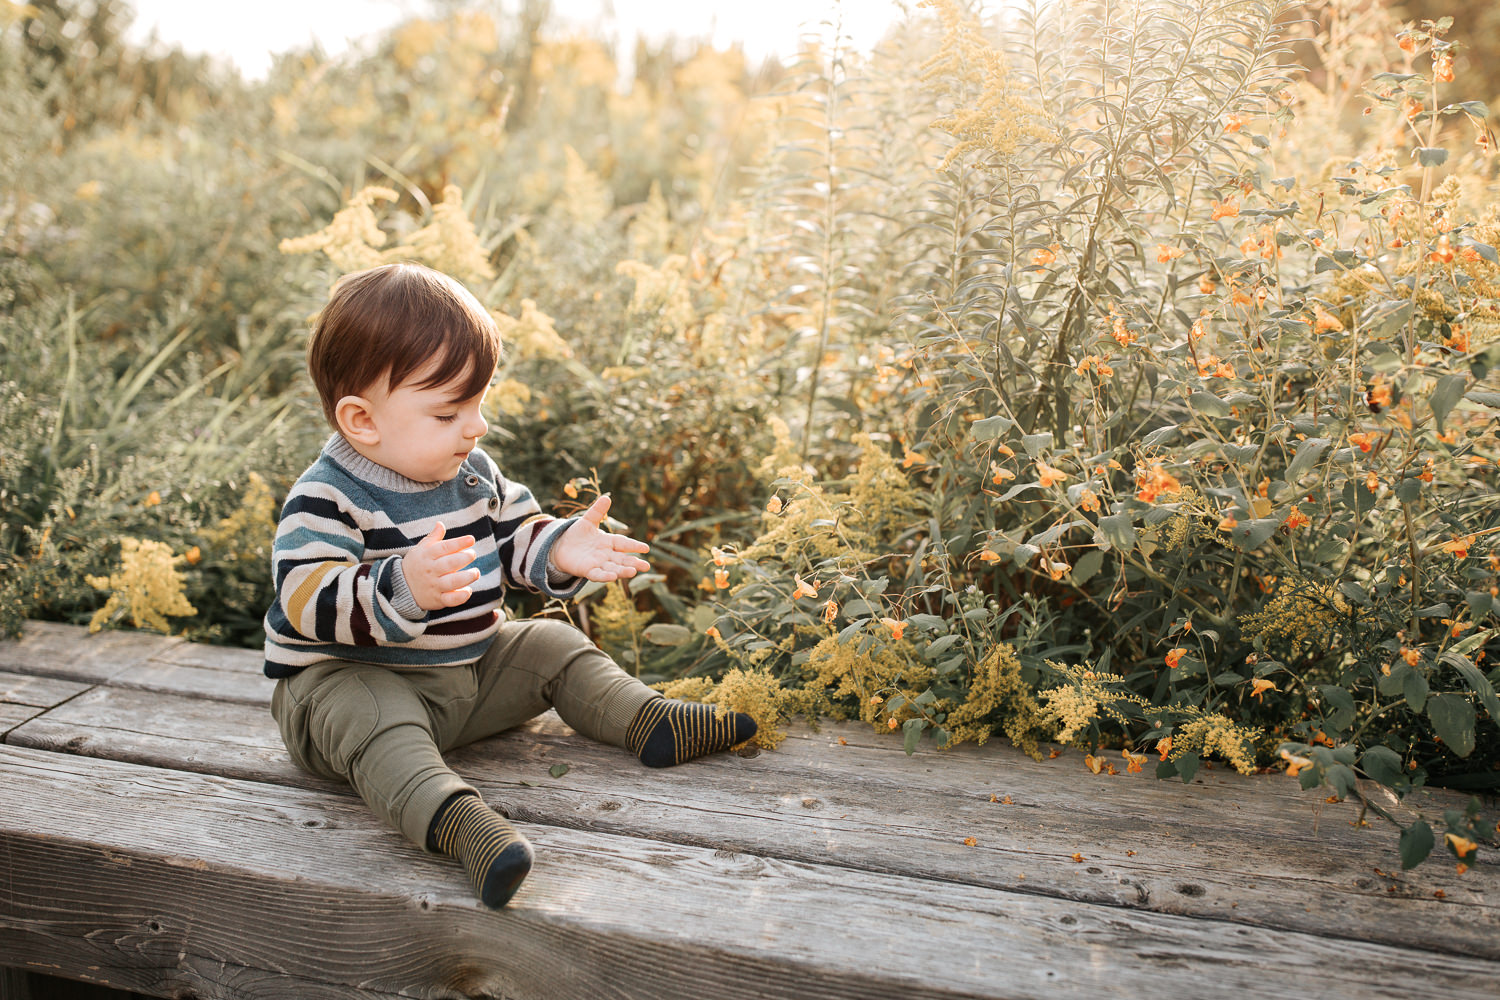 1 year old baby boy with brown hair wearing striped sweater sitting on wooden bench in front of yellow flowers, hands outstretched, setting sun behind him - Newmarket Golden Hour Photography